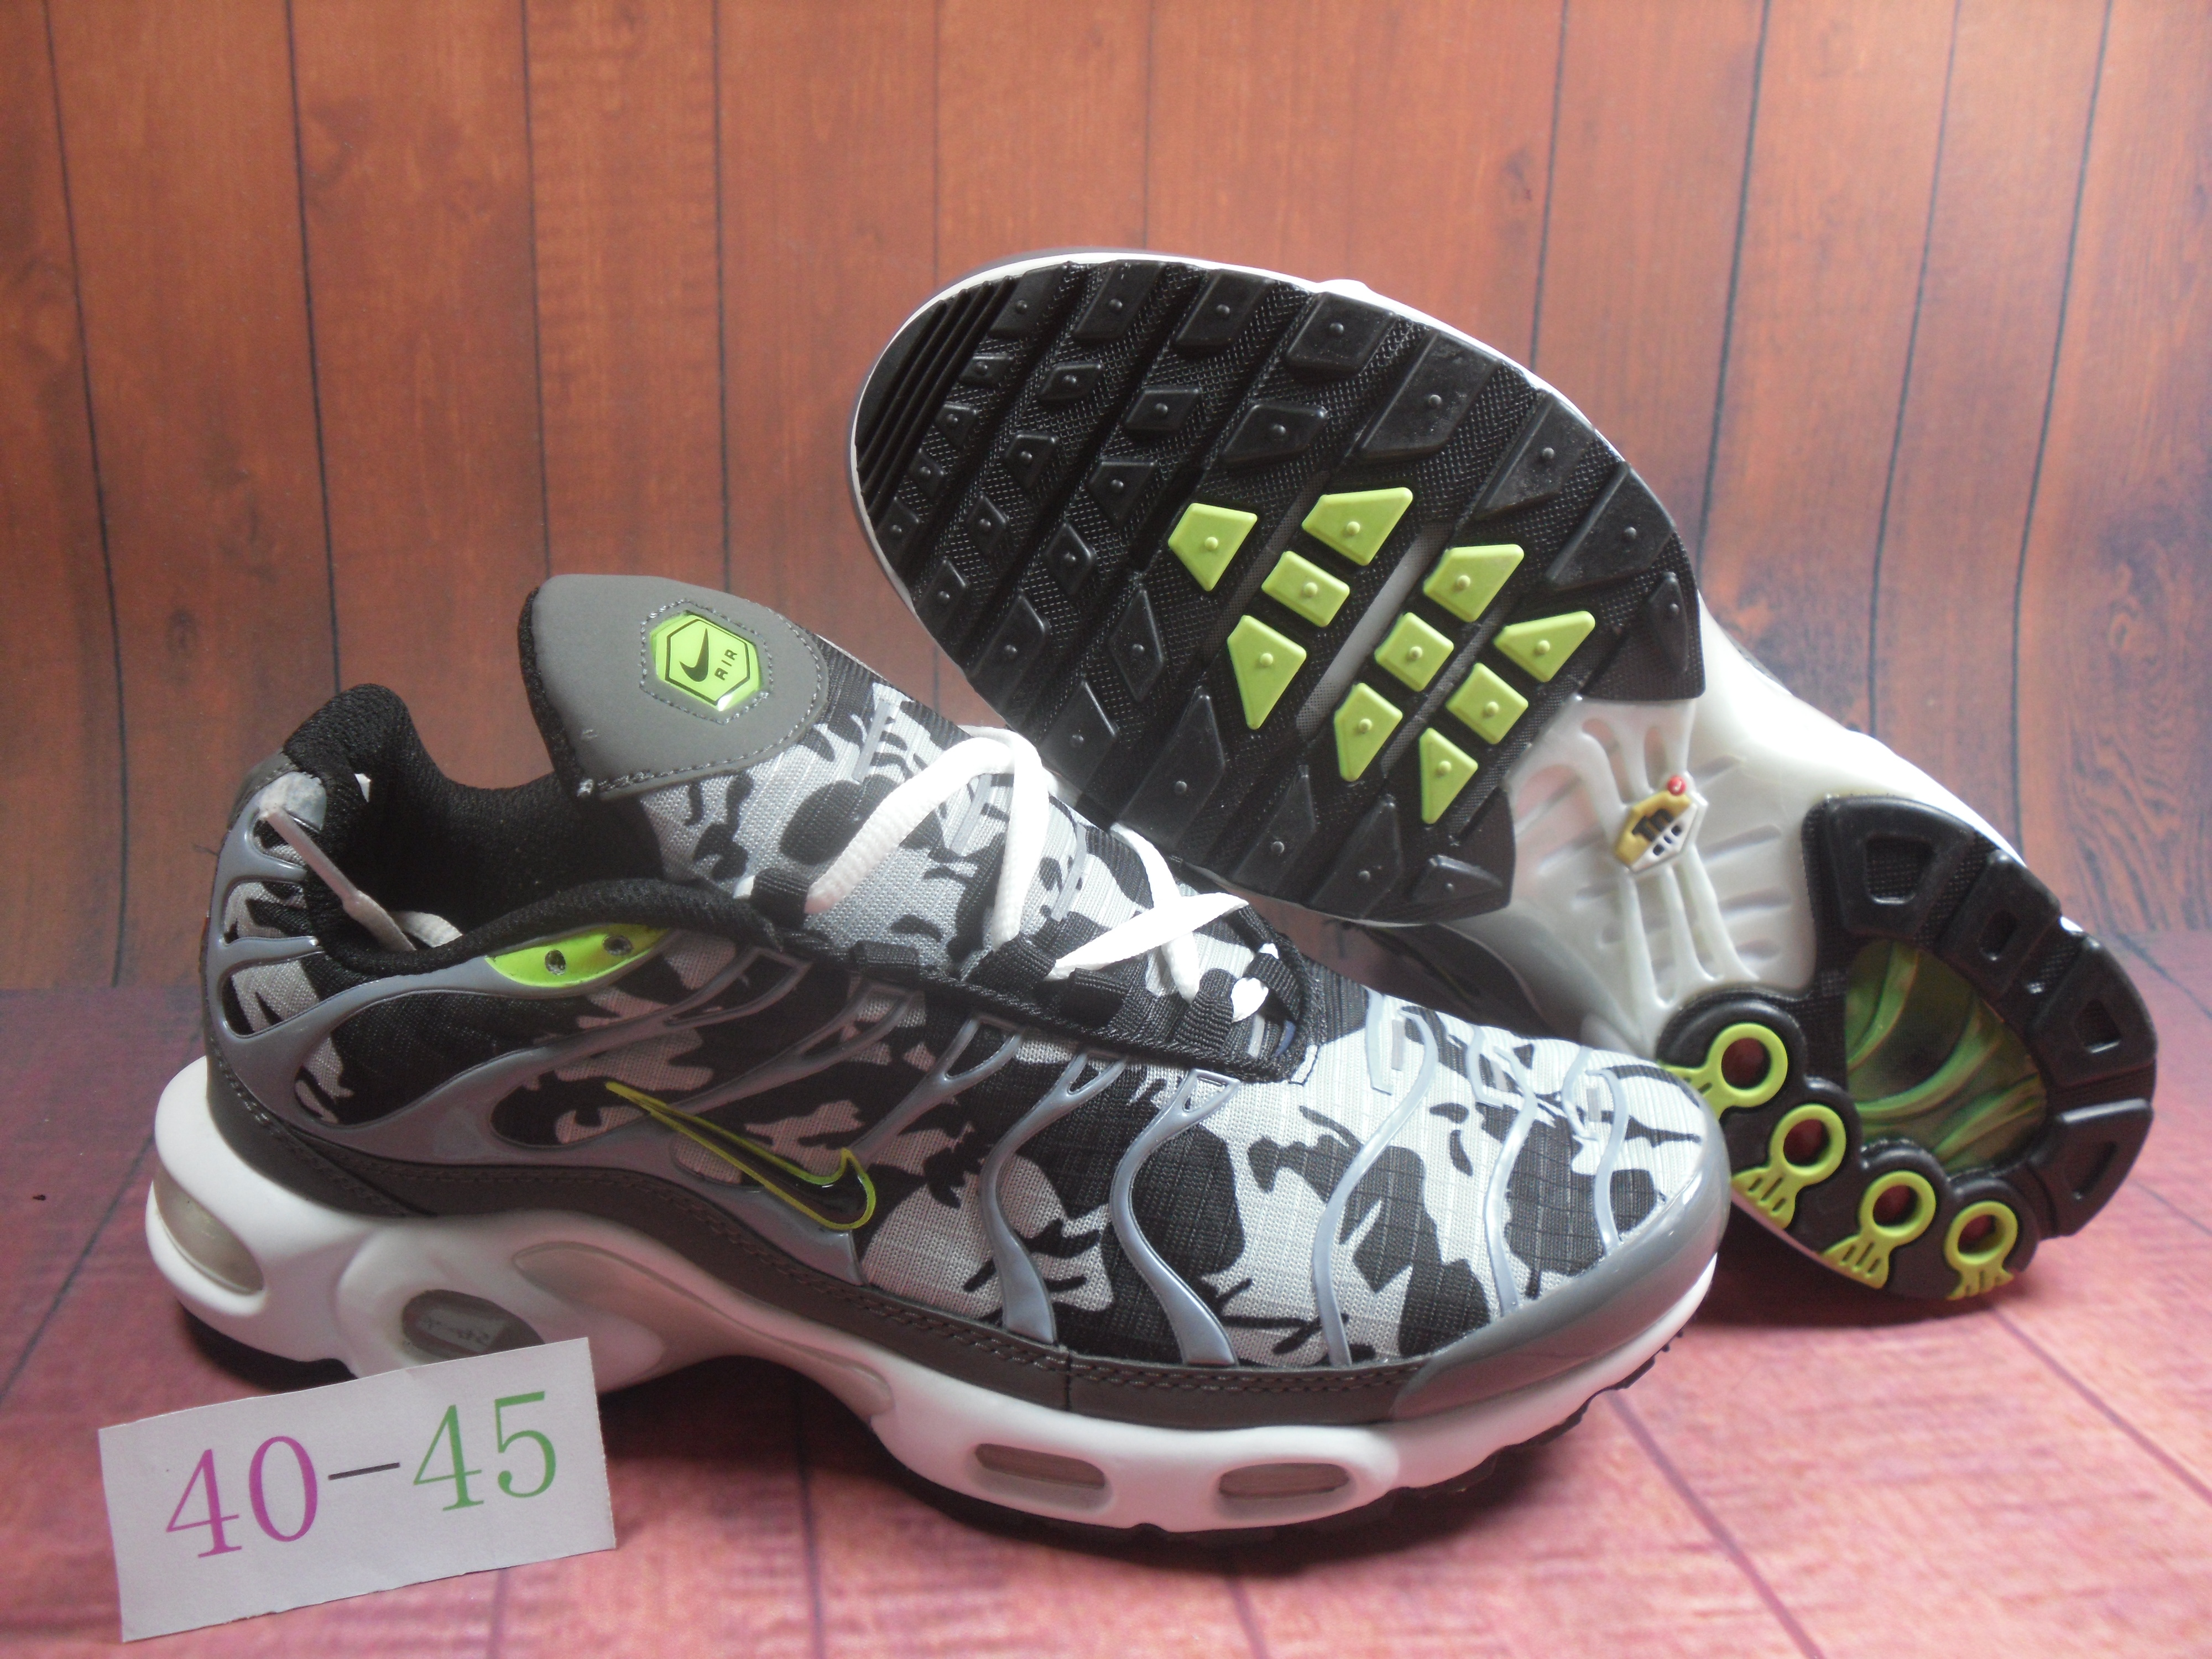 Nike Air Max Plus TN Grey Black Green Shoes